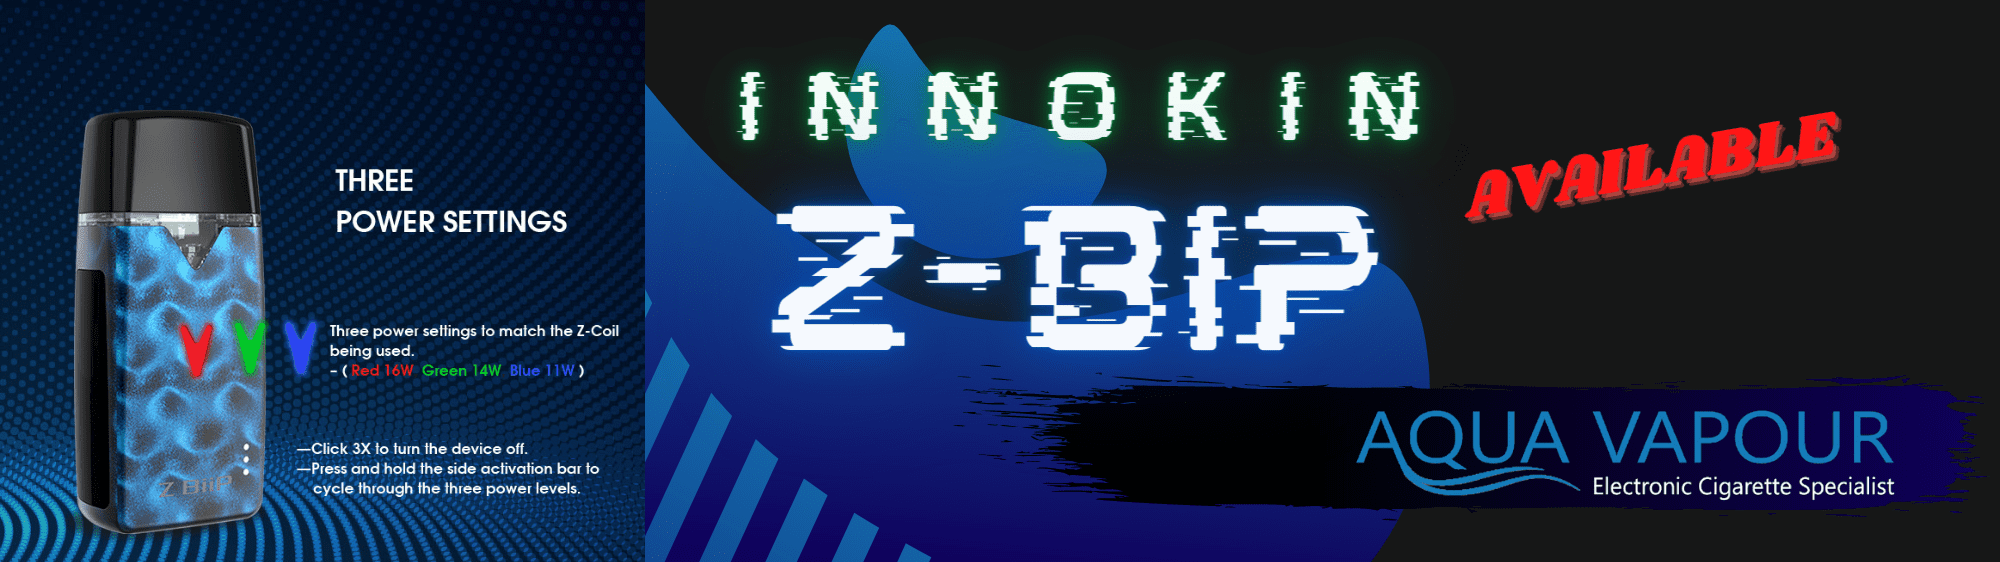 INNOKIN ZBIP SALE EDINBURGH